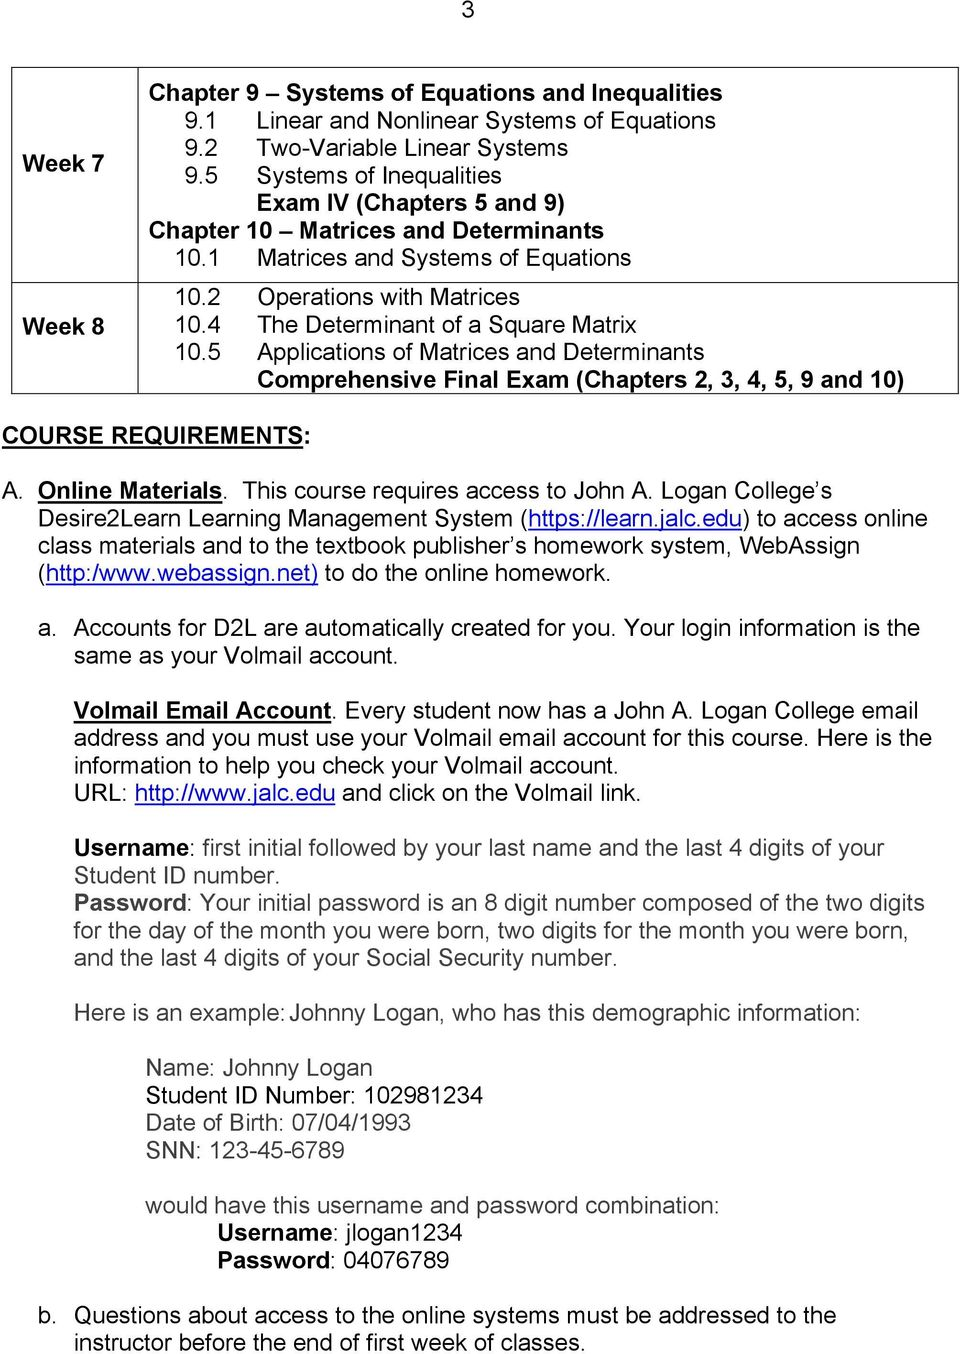 4 The Determinant of a Square Matrix 10.5 Applications of Matrices and Determinants Comprehensive Final Exam (Chapters 2, 3, 4, 5, 9 and 10) COURSE REQUIREMENTS: A. Online Materials.